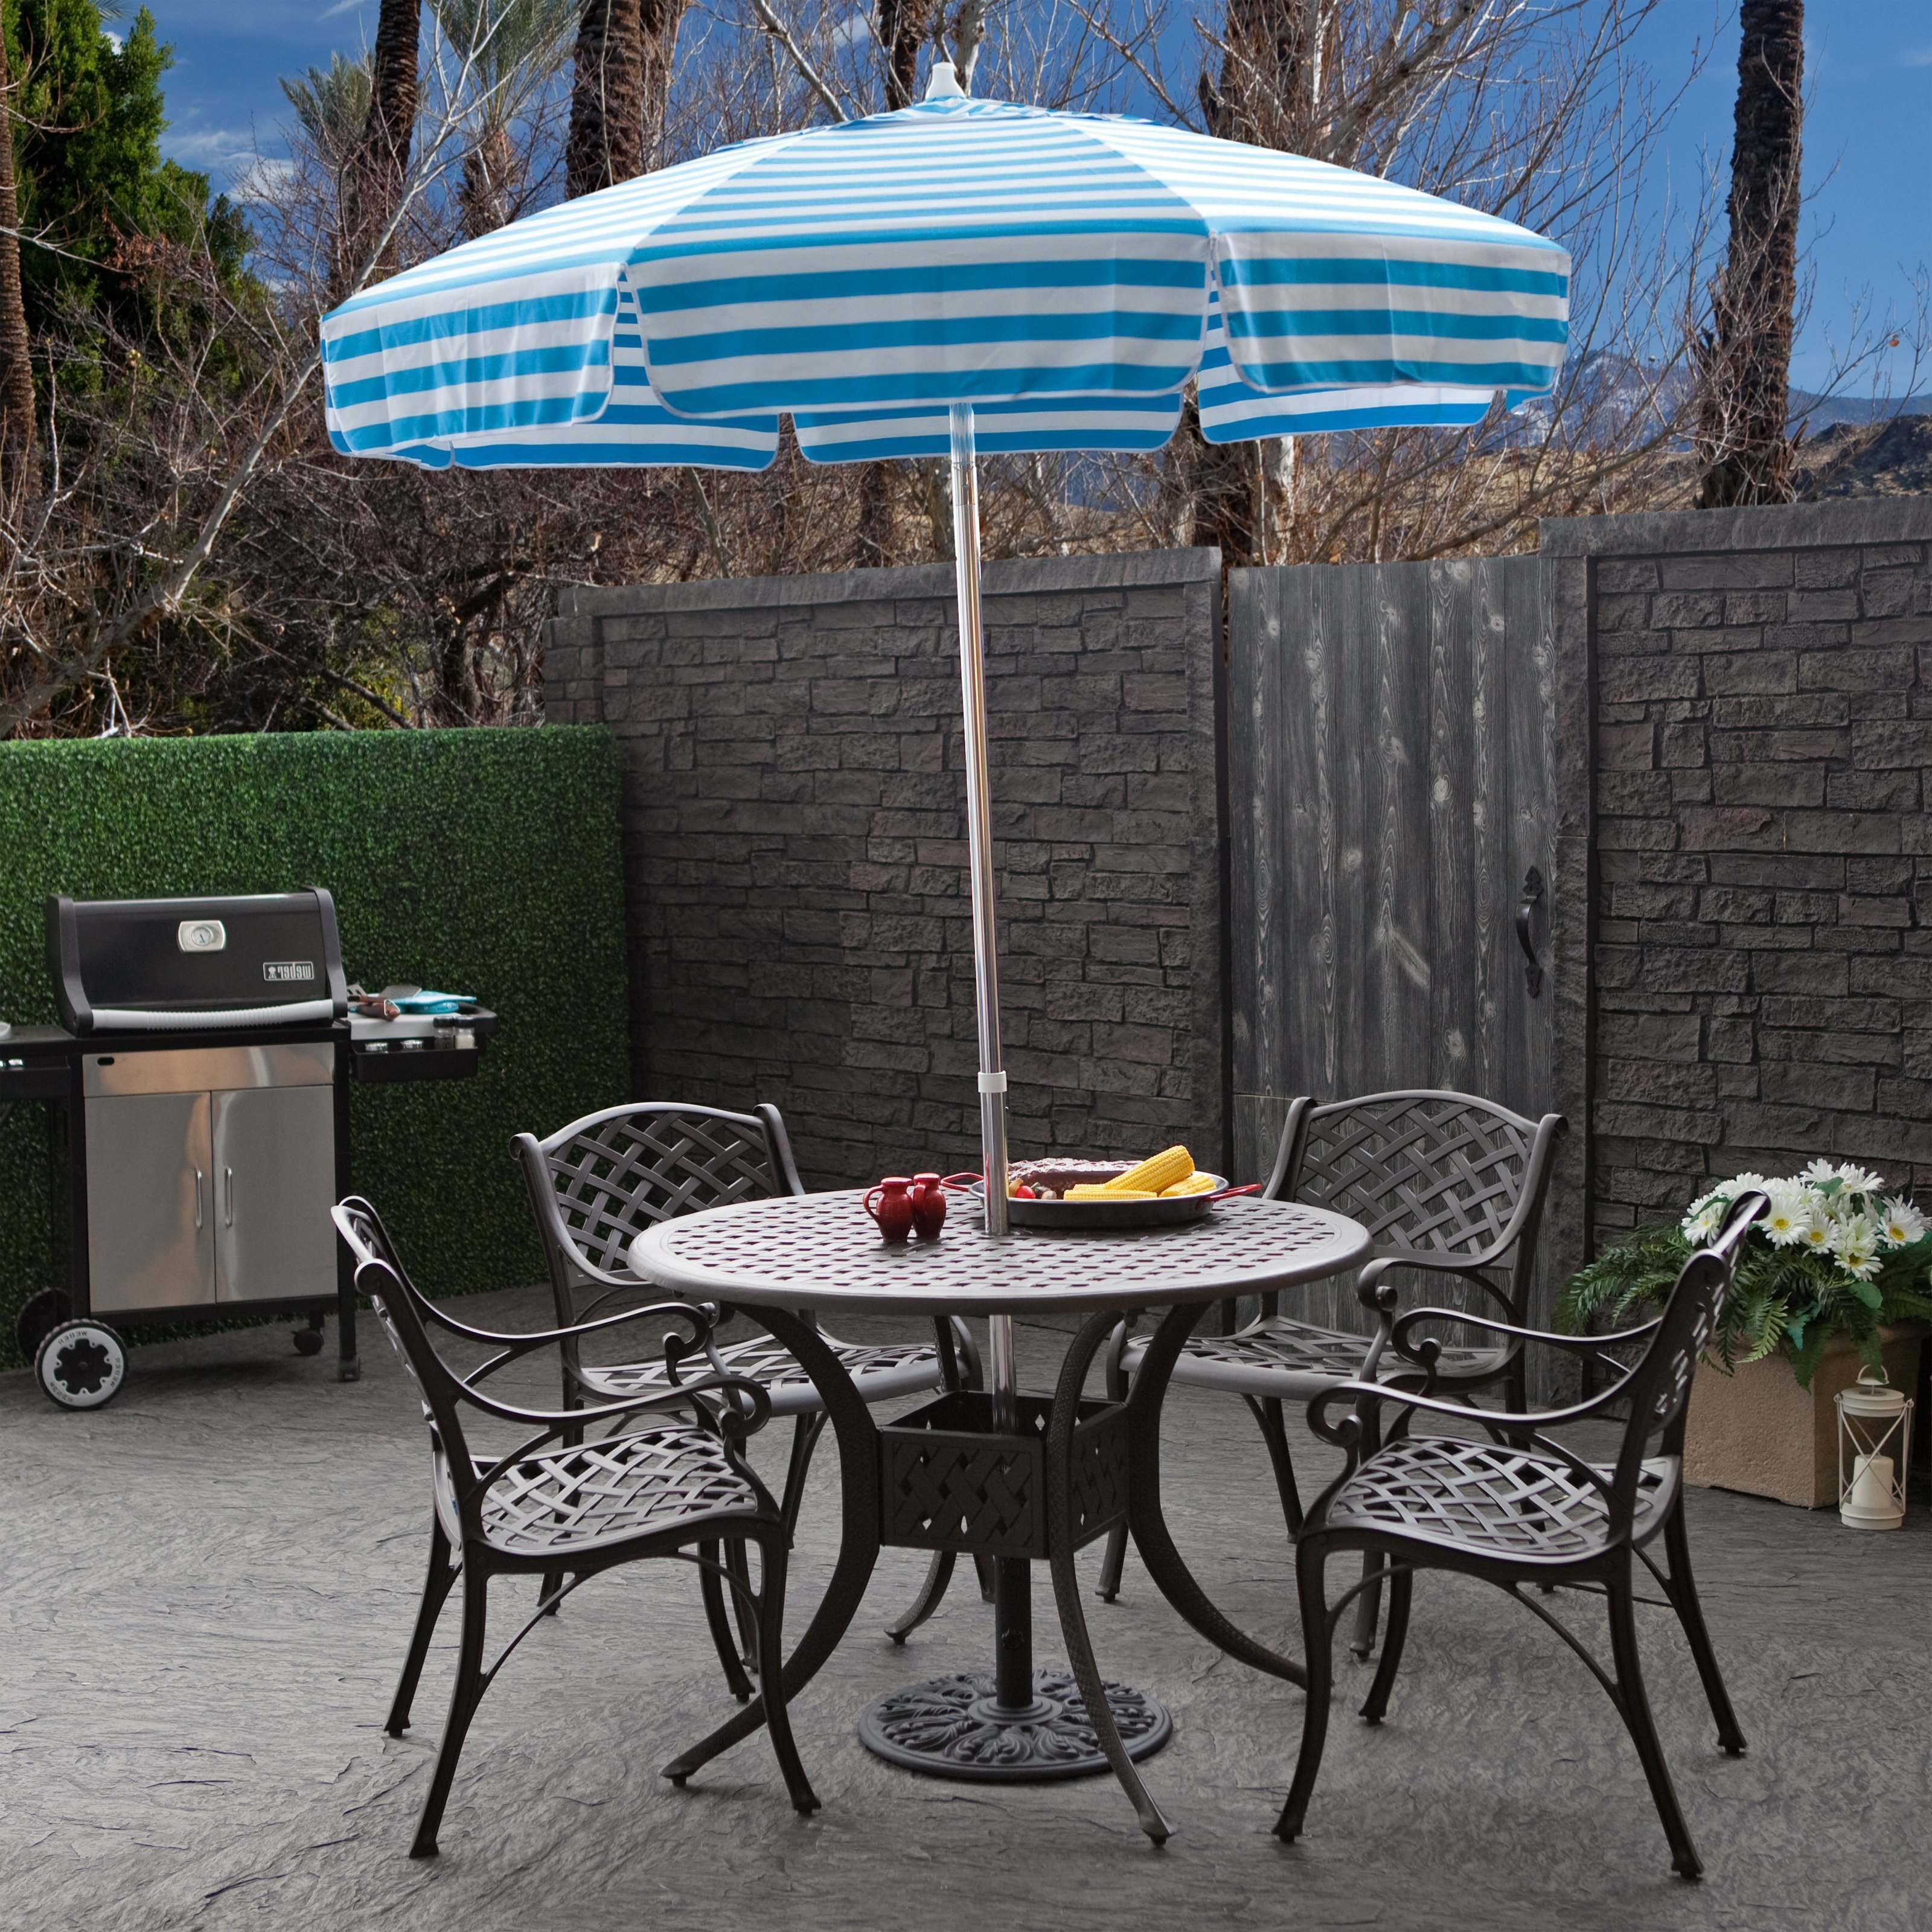 Most Popular Incredible Patio Table Umbrellas Destinationgear 6 Ft Aluminum In Small Patio Tables With Umbrellas Hole (View 2 of 20)